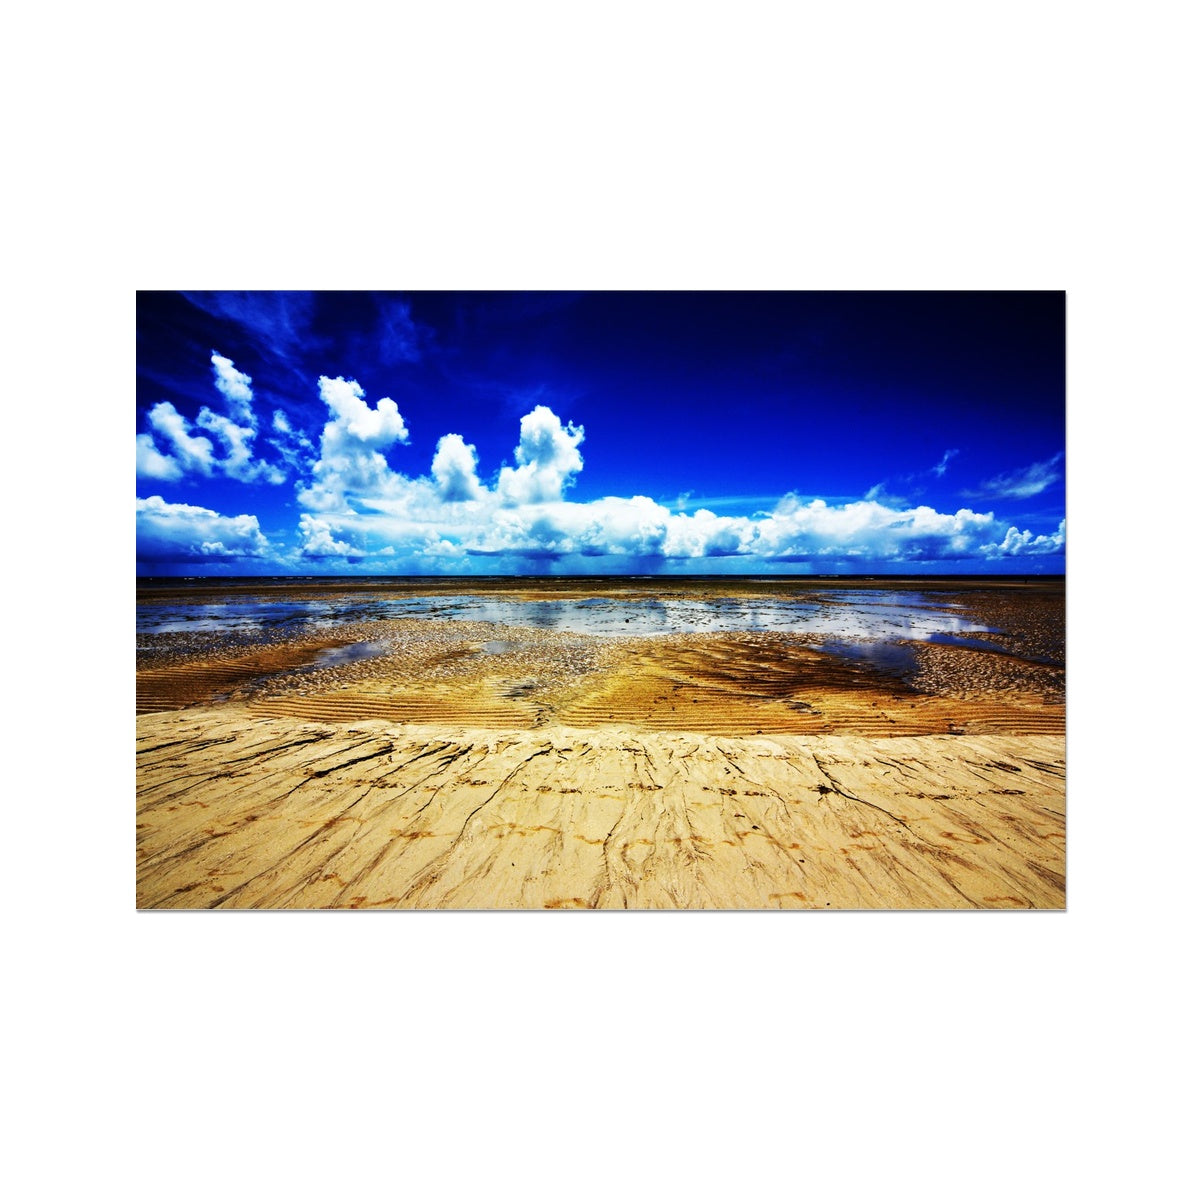 Bahia Electric Aqua Blue - Brasil Photo Art Print